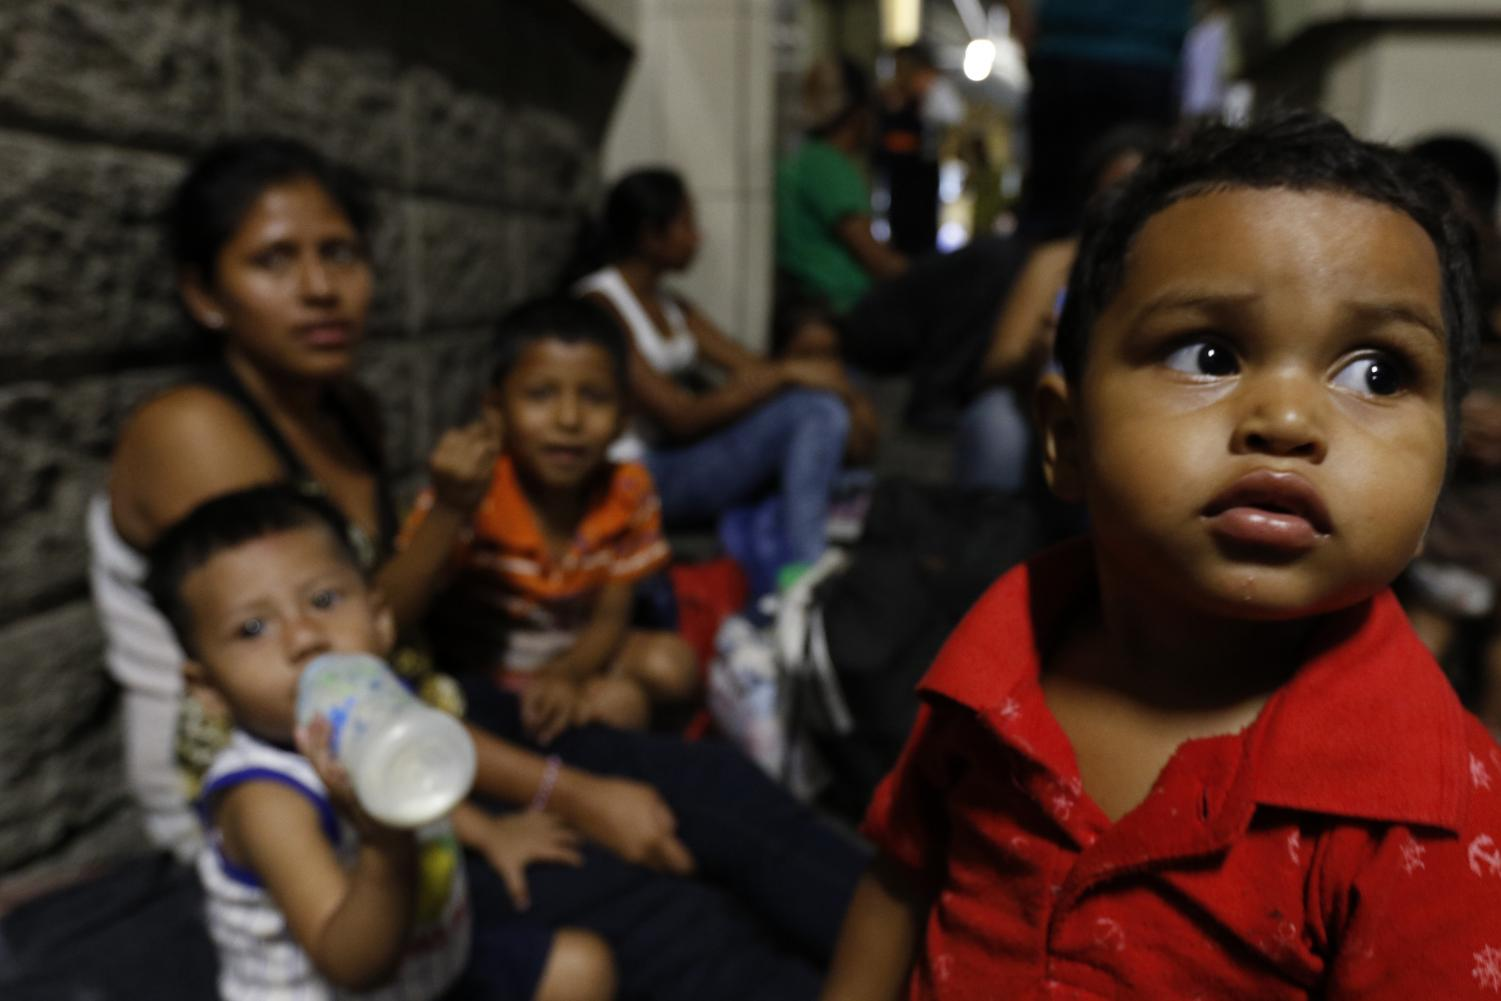 Migrants planning to join a new caravan of several hundred people wait in San Pedro Sula, Honduras, Tuesday, April 9, 2019. Advocates warn that if the Trump administration cuts aid to Central American countries like Honduras, the humanitarian crisis in these regions will only grow.